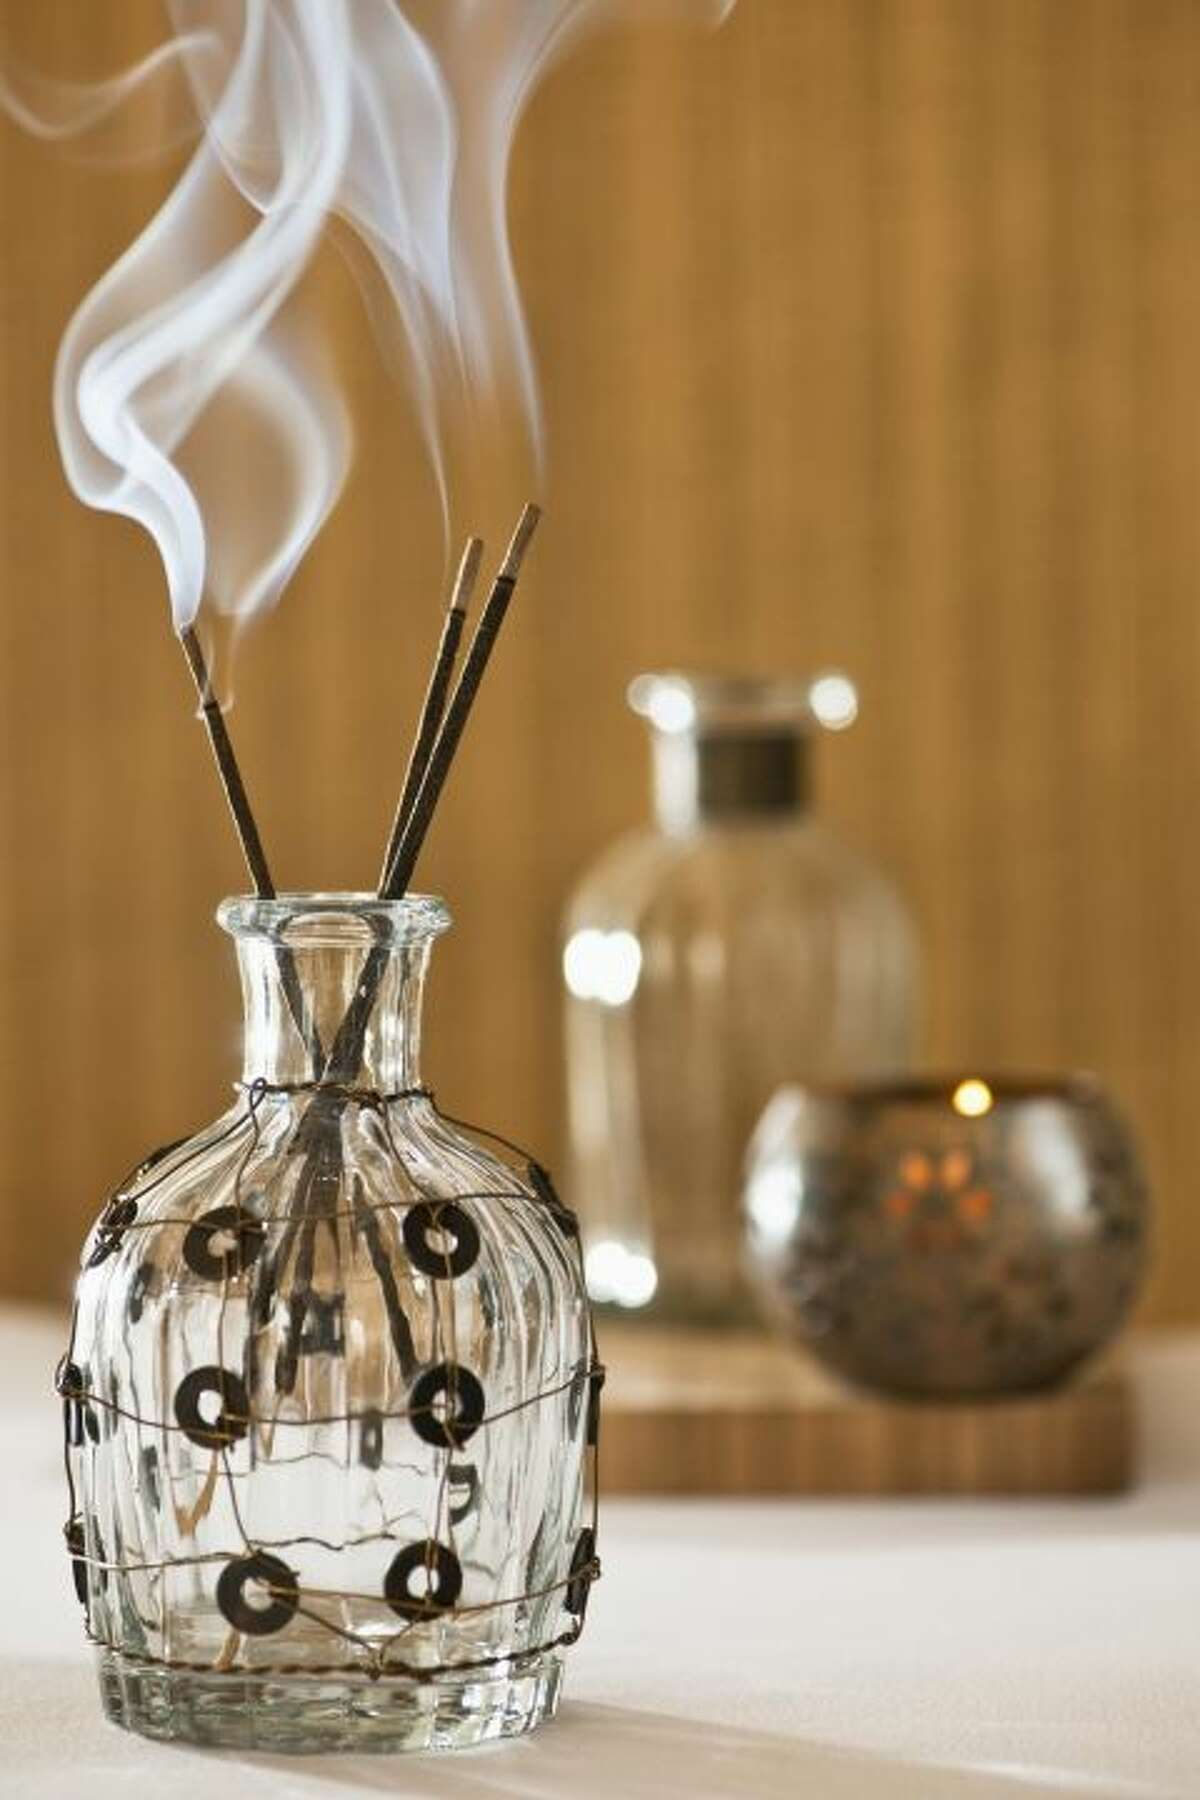 CAREFULLY BURN SOME INCENSE. This fragrant smoke has long been a spiritual and meditation practice - so why not try it at home? Christmann says it'll help elevate the energy: